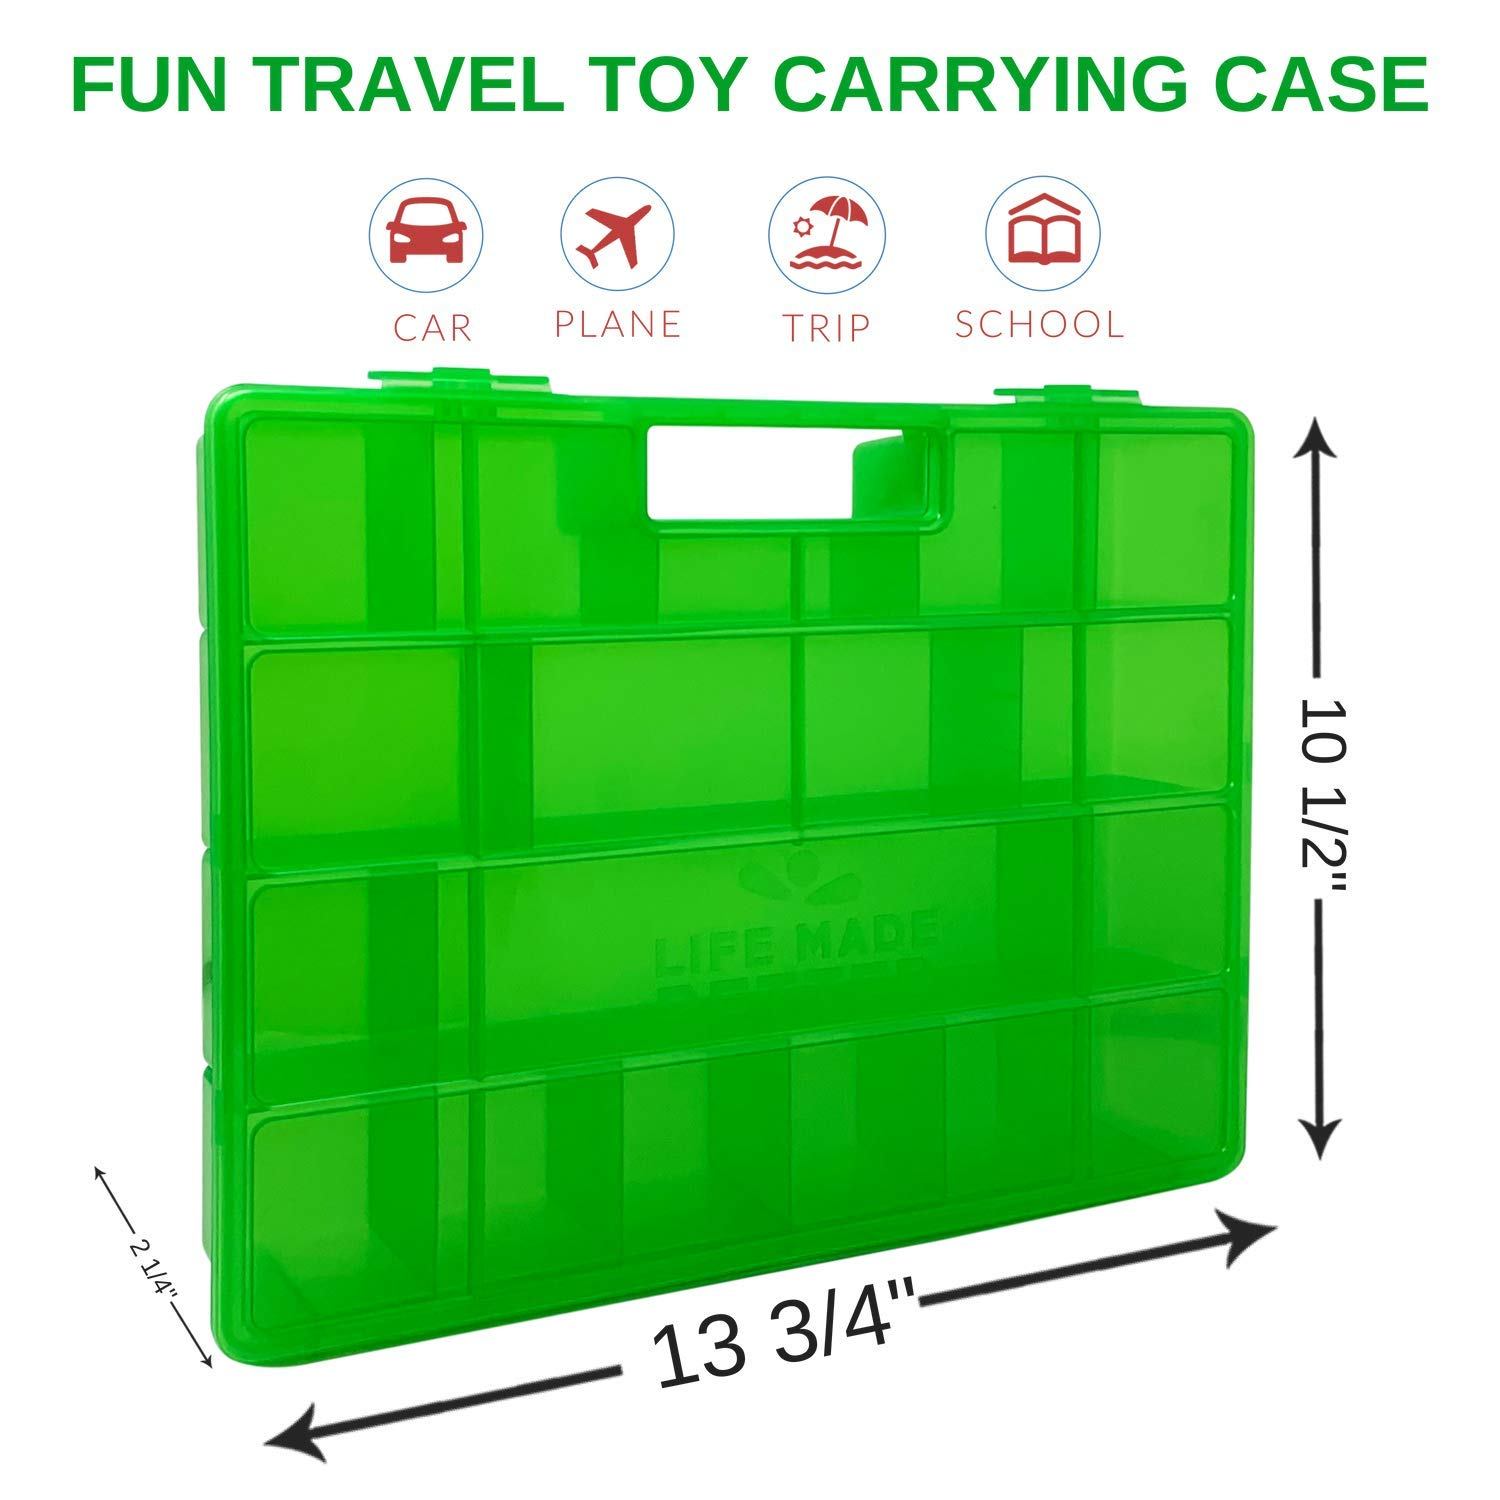 Toy Figure Storage Organization Case not Made by Funko Compatible with Funko Pop Pint Size Mini Figures Life Made Better Green Toy Storage 2.0 Organizer